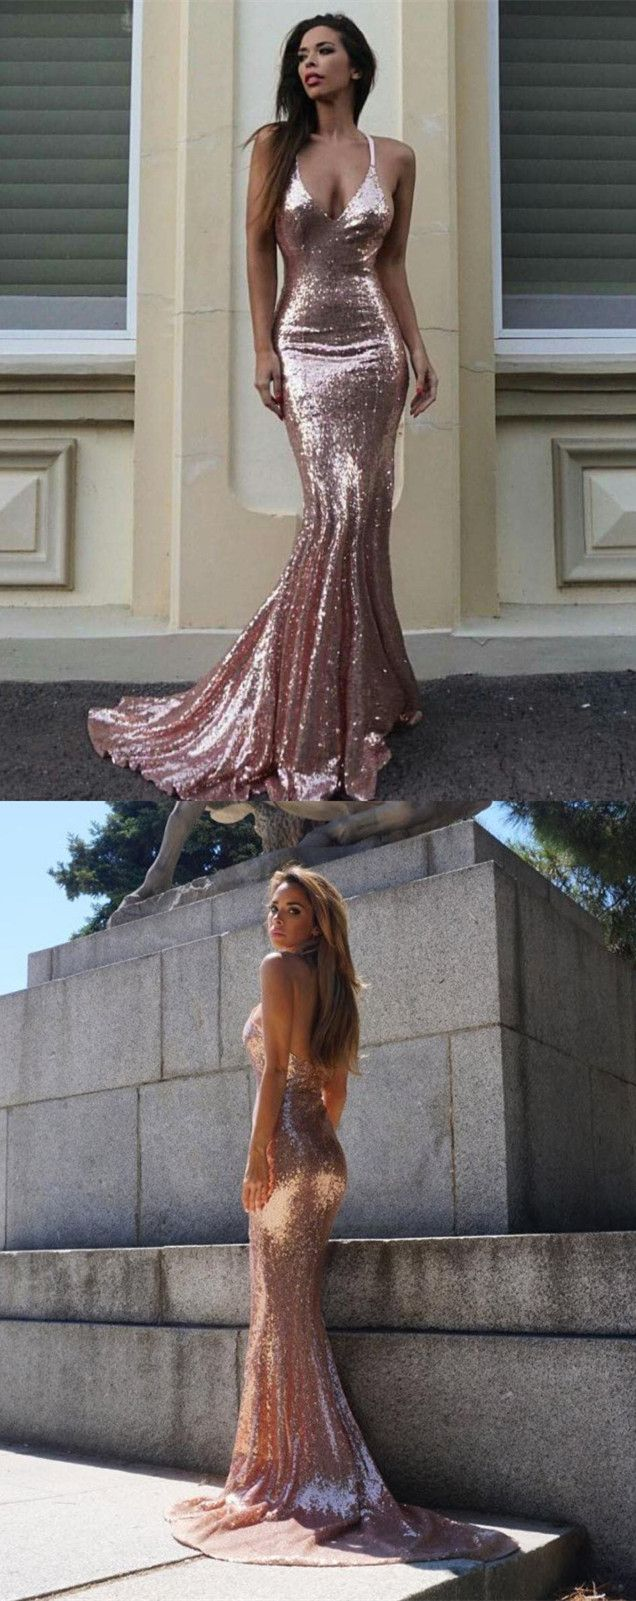 mermaid sparkle prom evening gowns with train, fashion formal backless party gowns, sexy evening dresses, #mermaid #evening